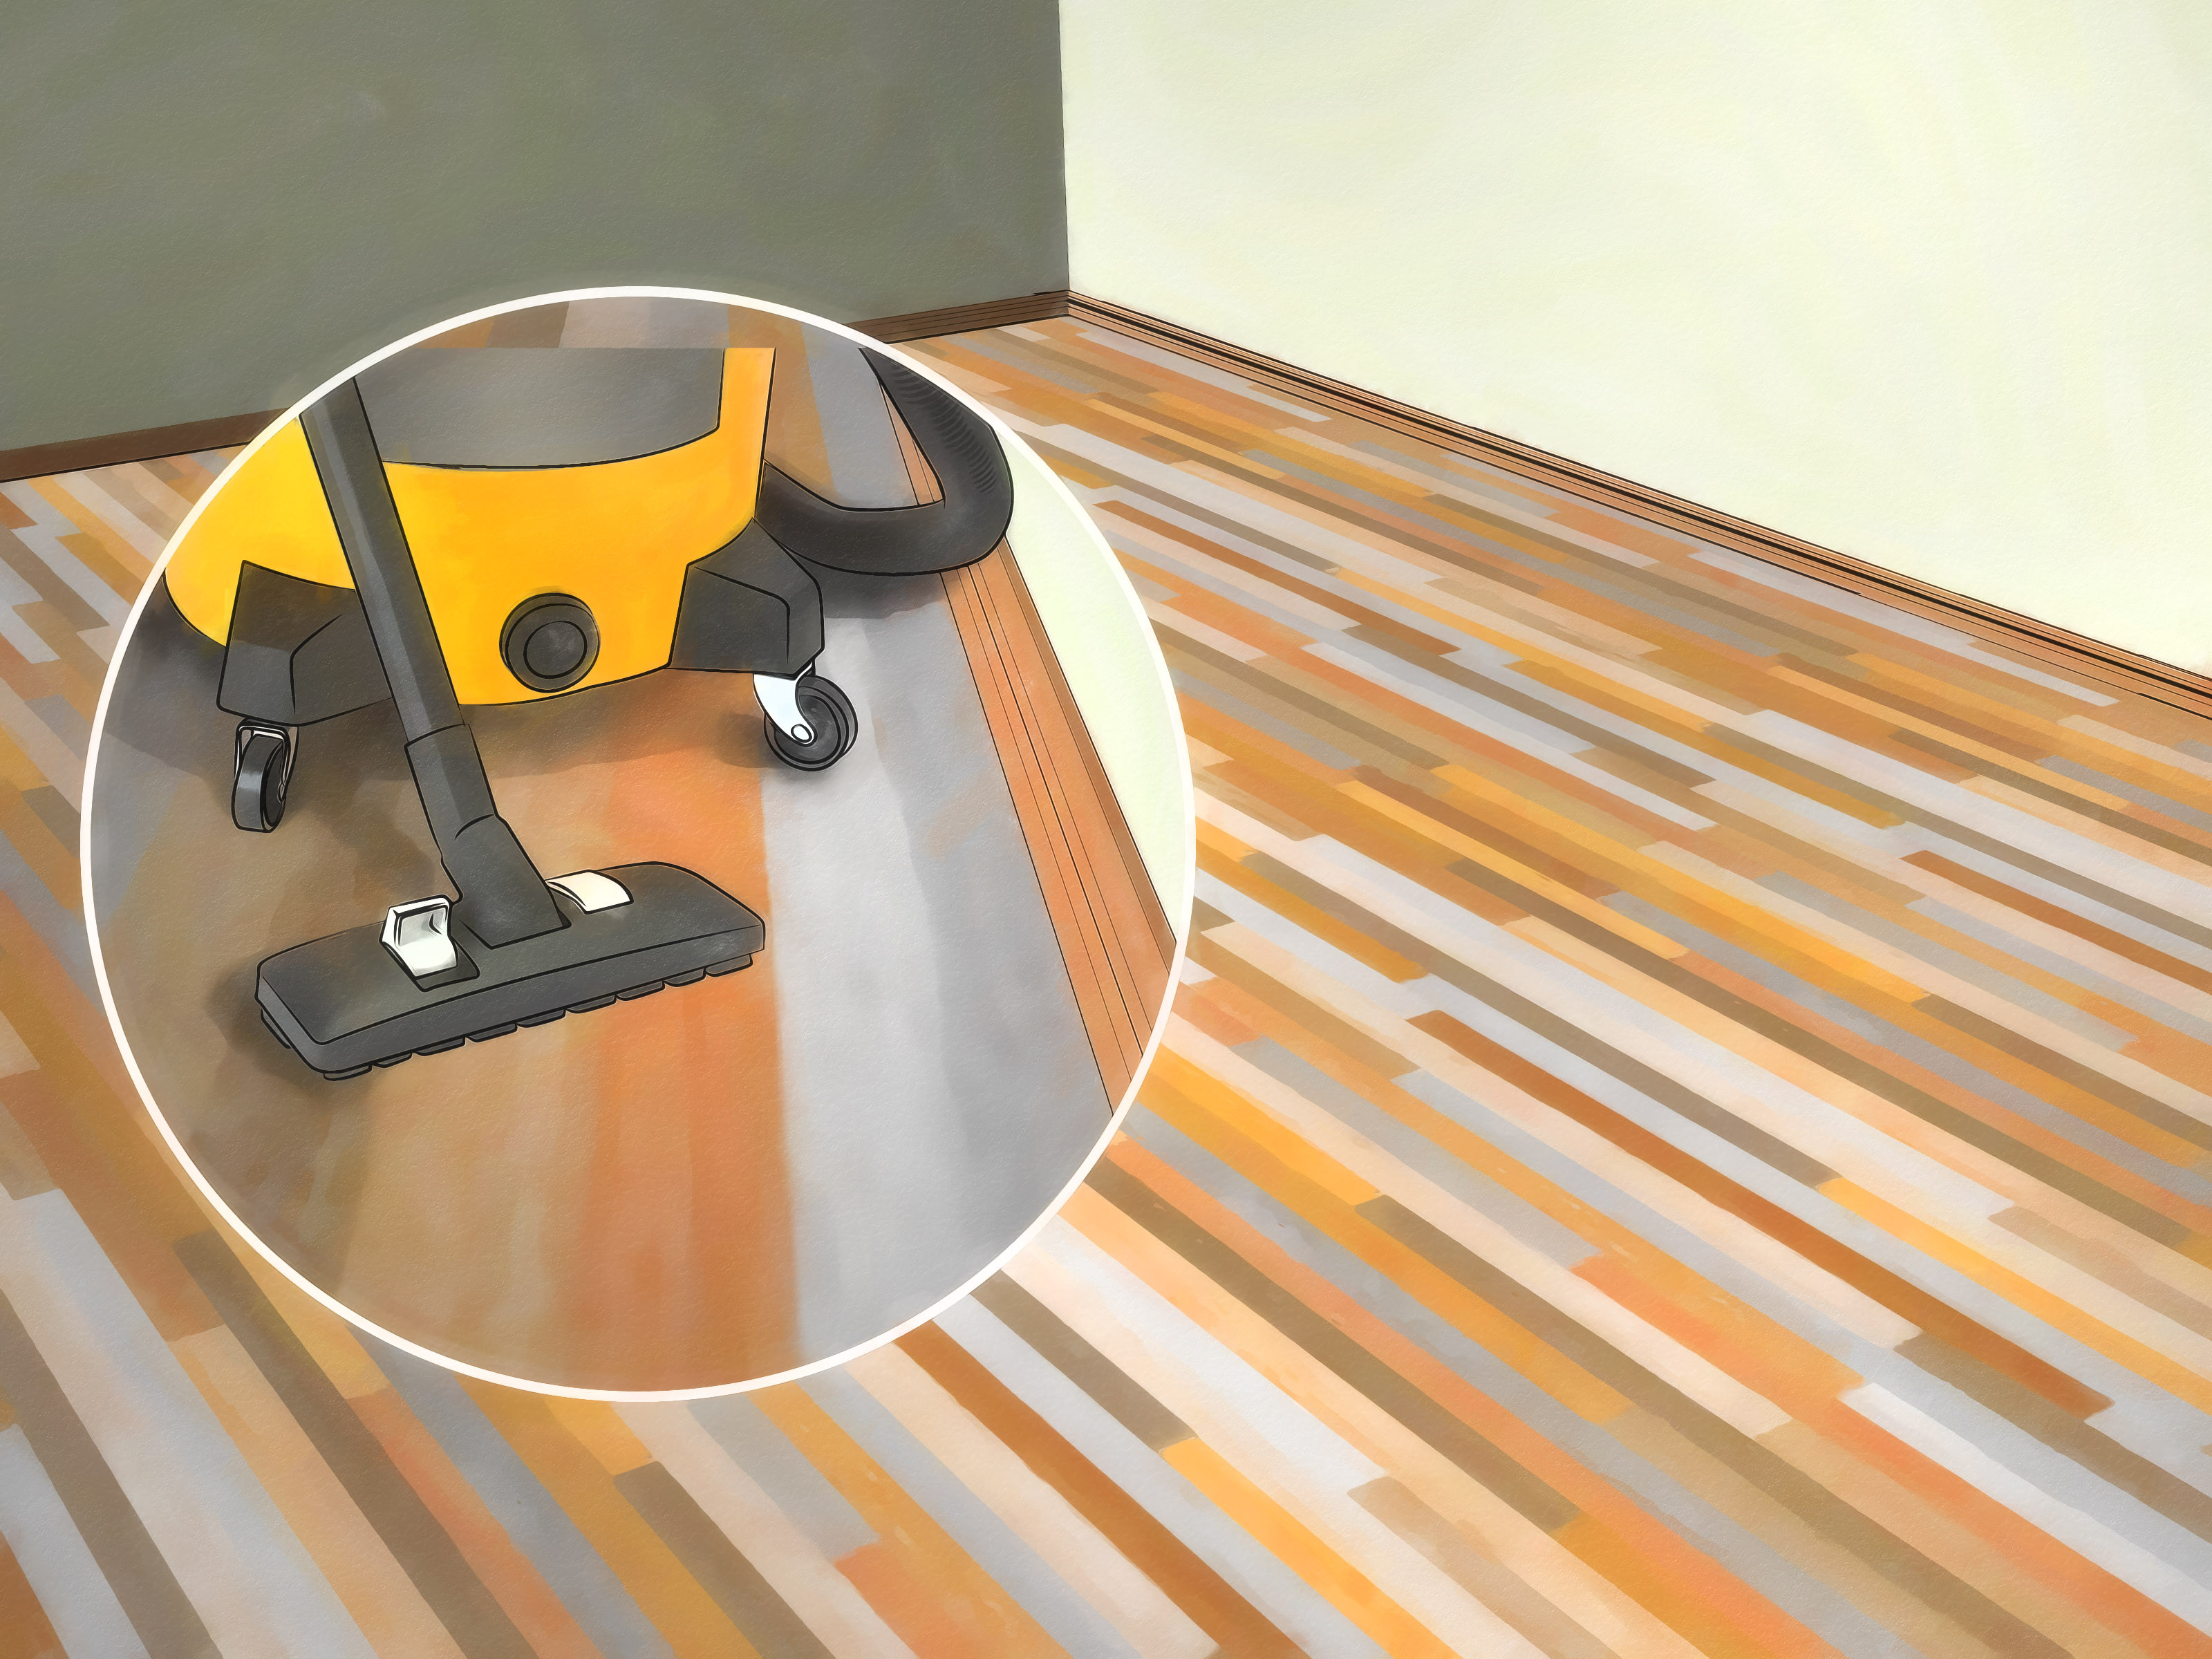 hardwood floor sanding equipment of how to sand hardwood floors with pictures wikihow inside sand hardwood floors step 22